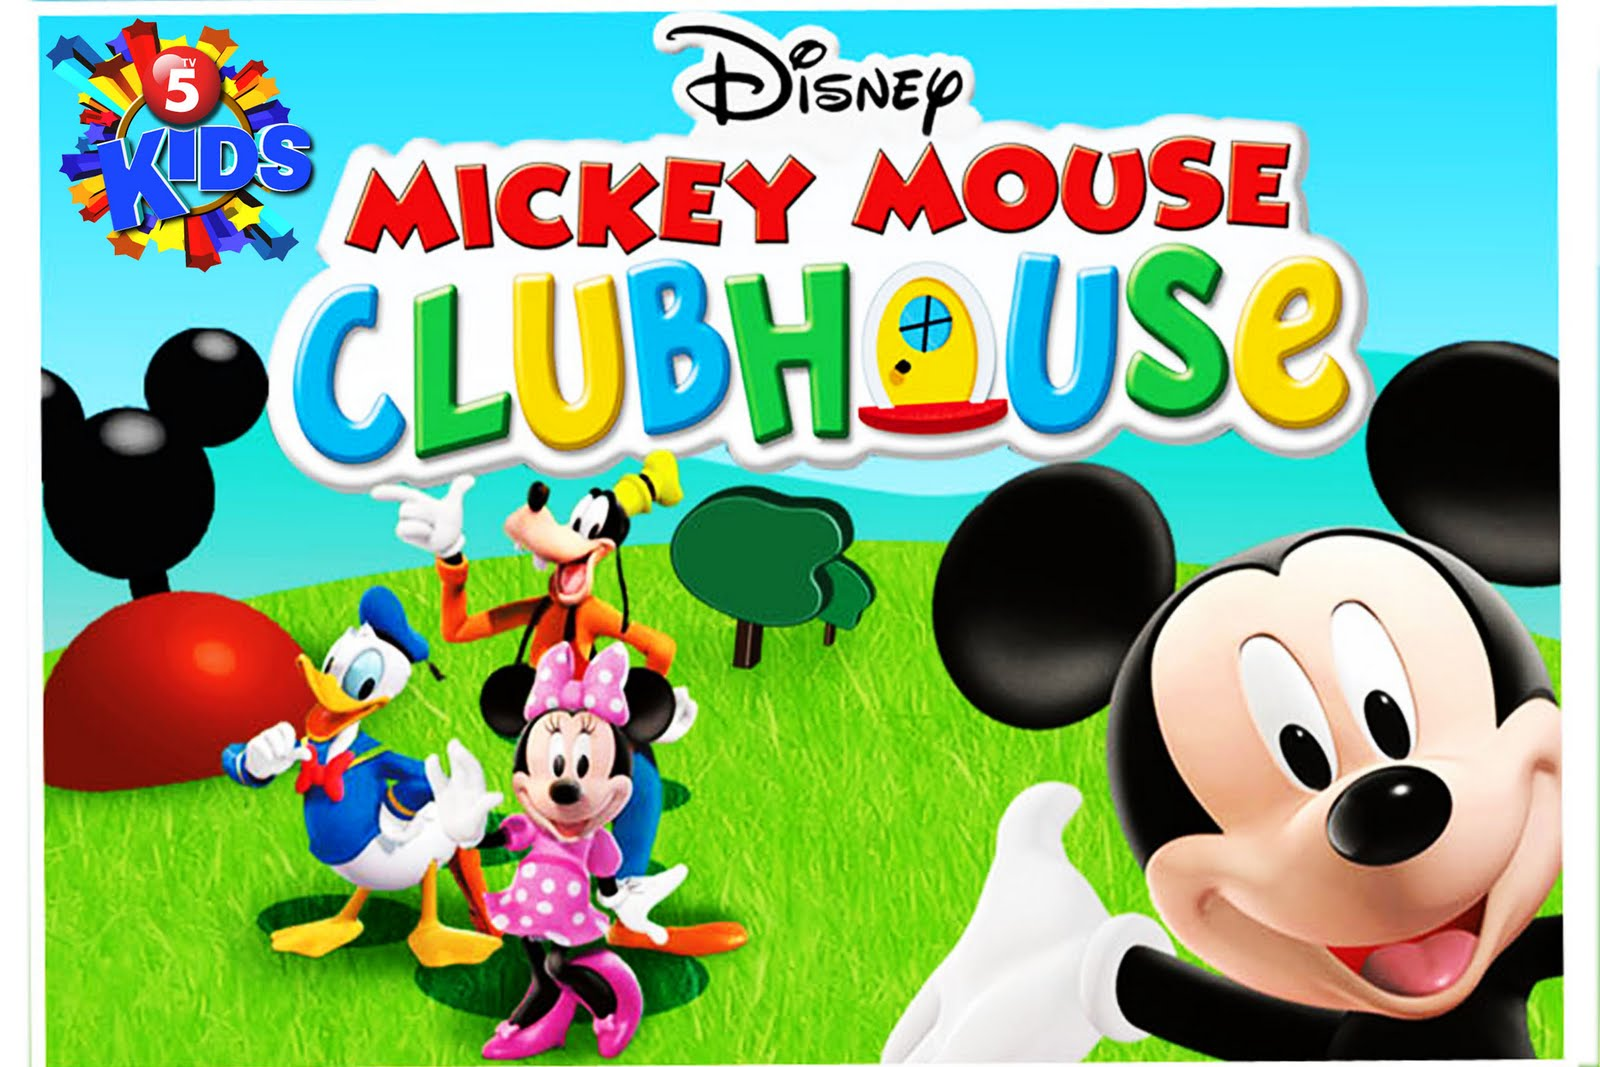 Mickey-Mouse-Clubhouse.jpg